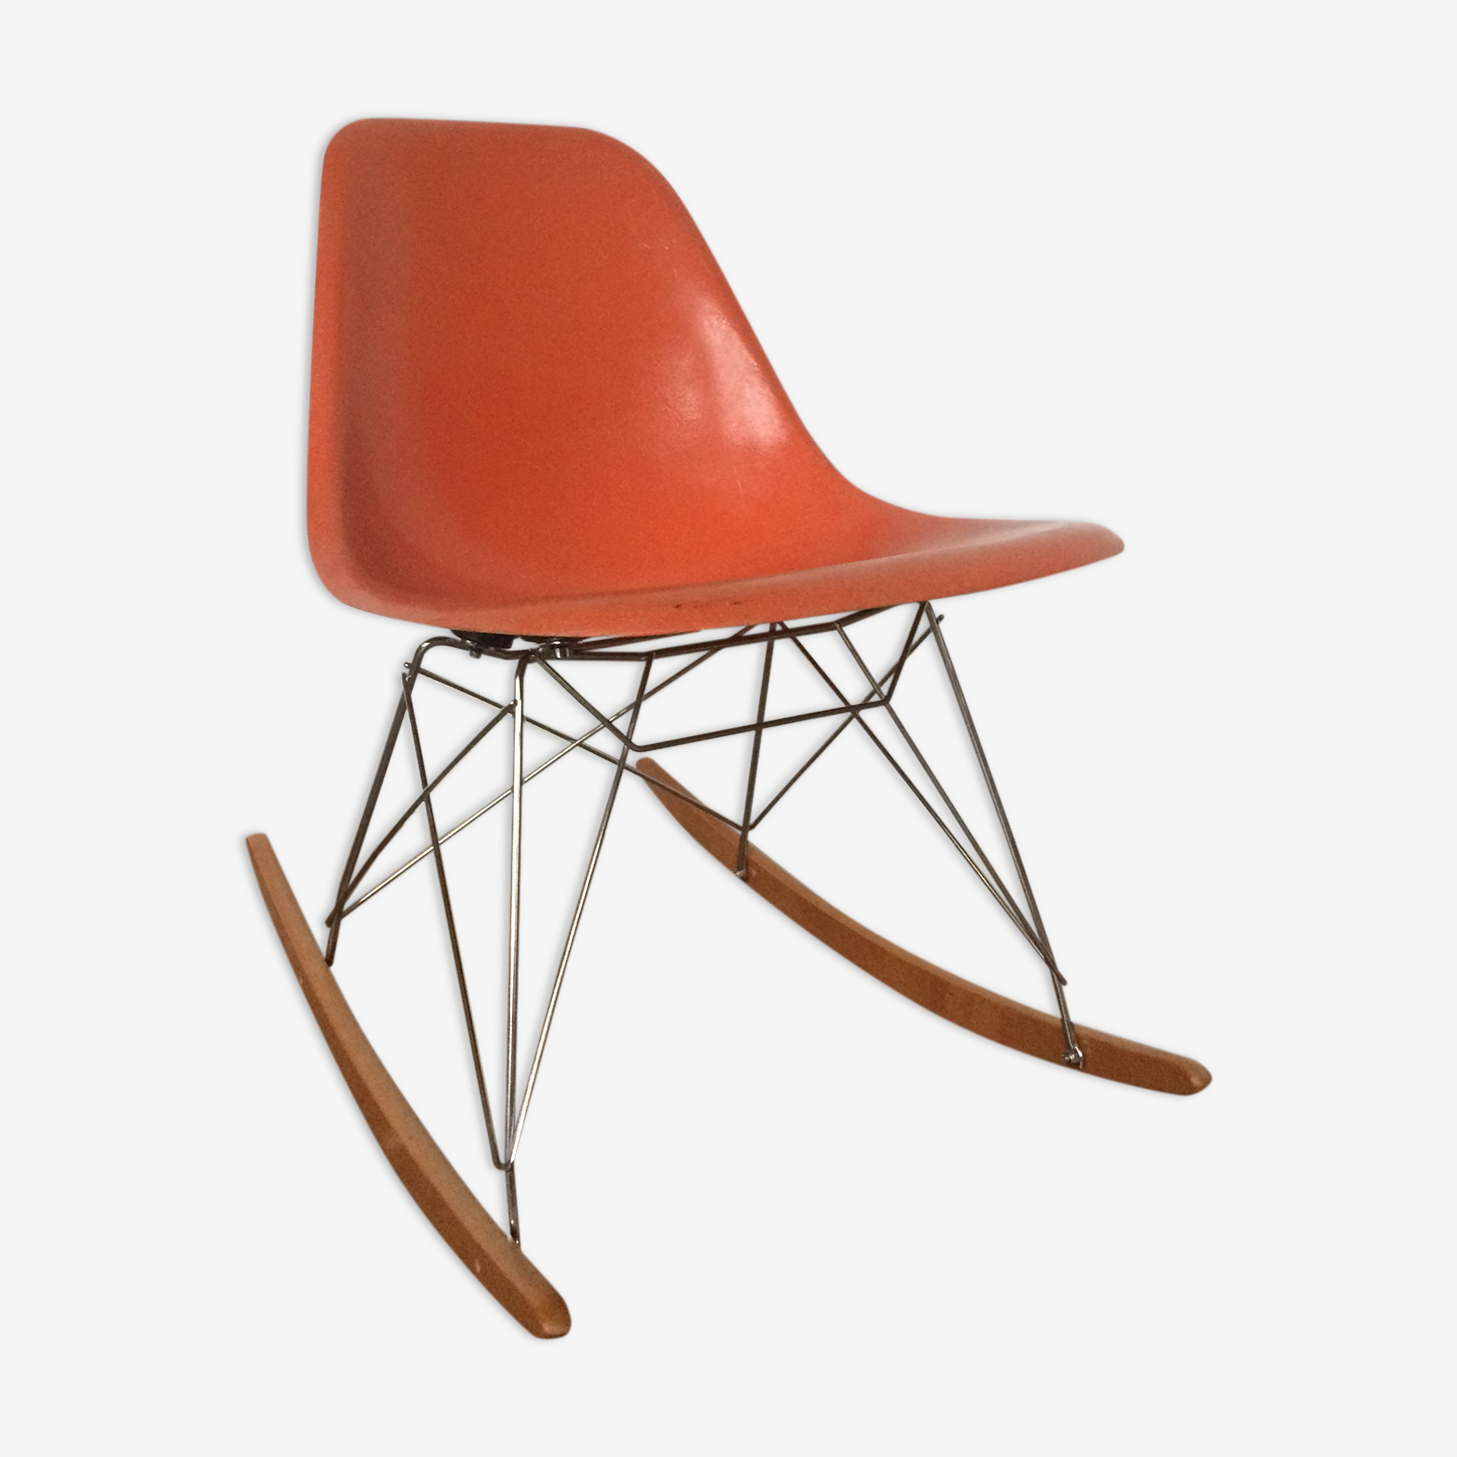 Rocking-chair Eames édition Herman Miller